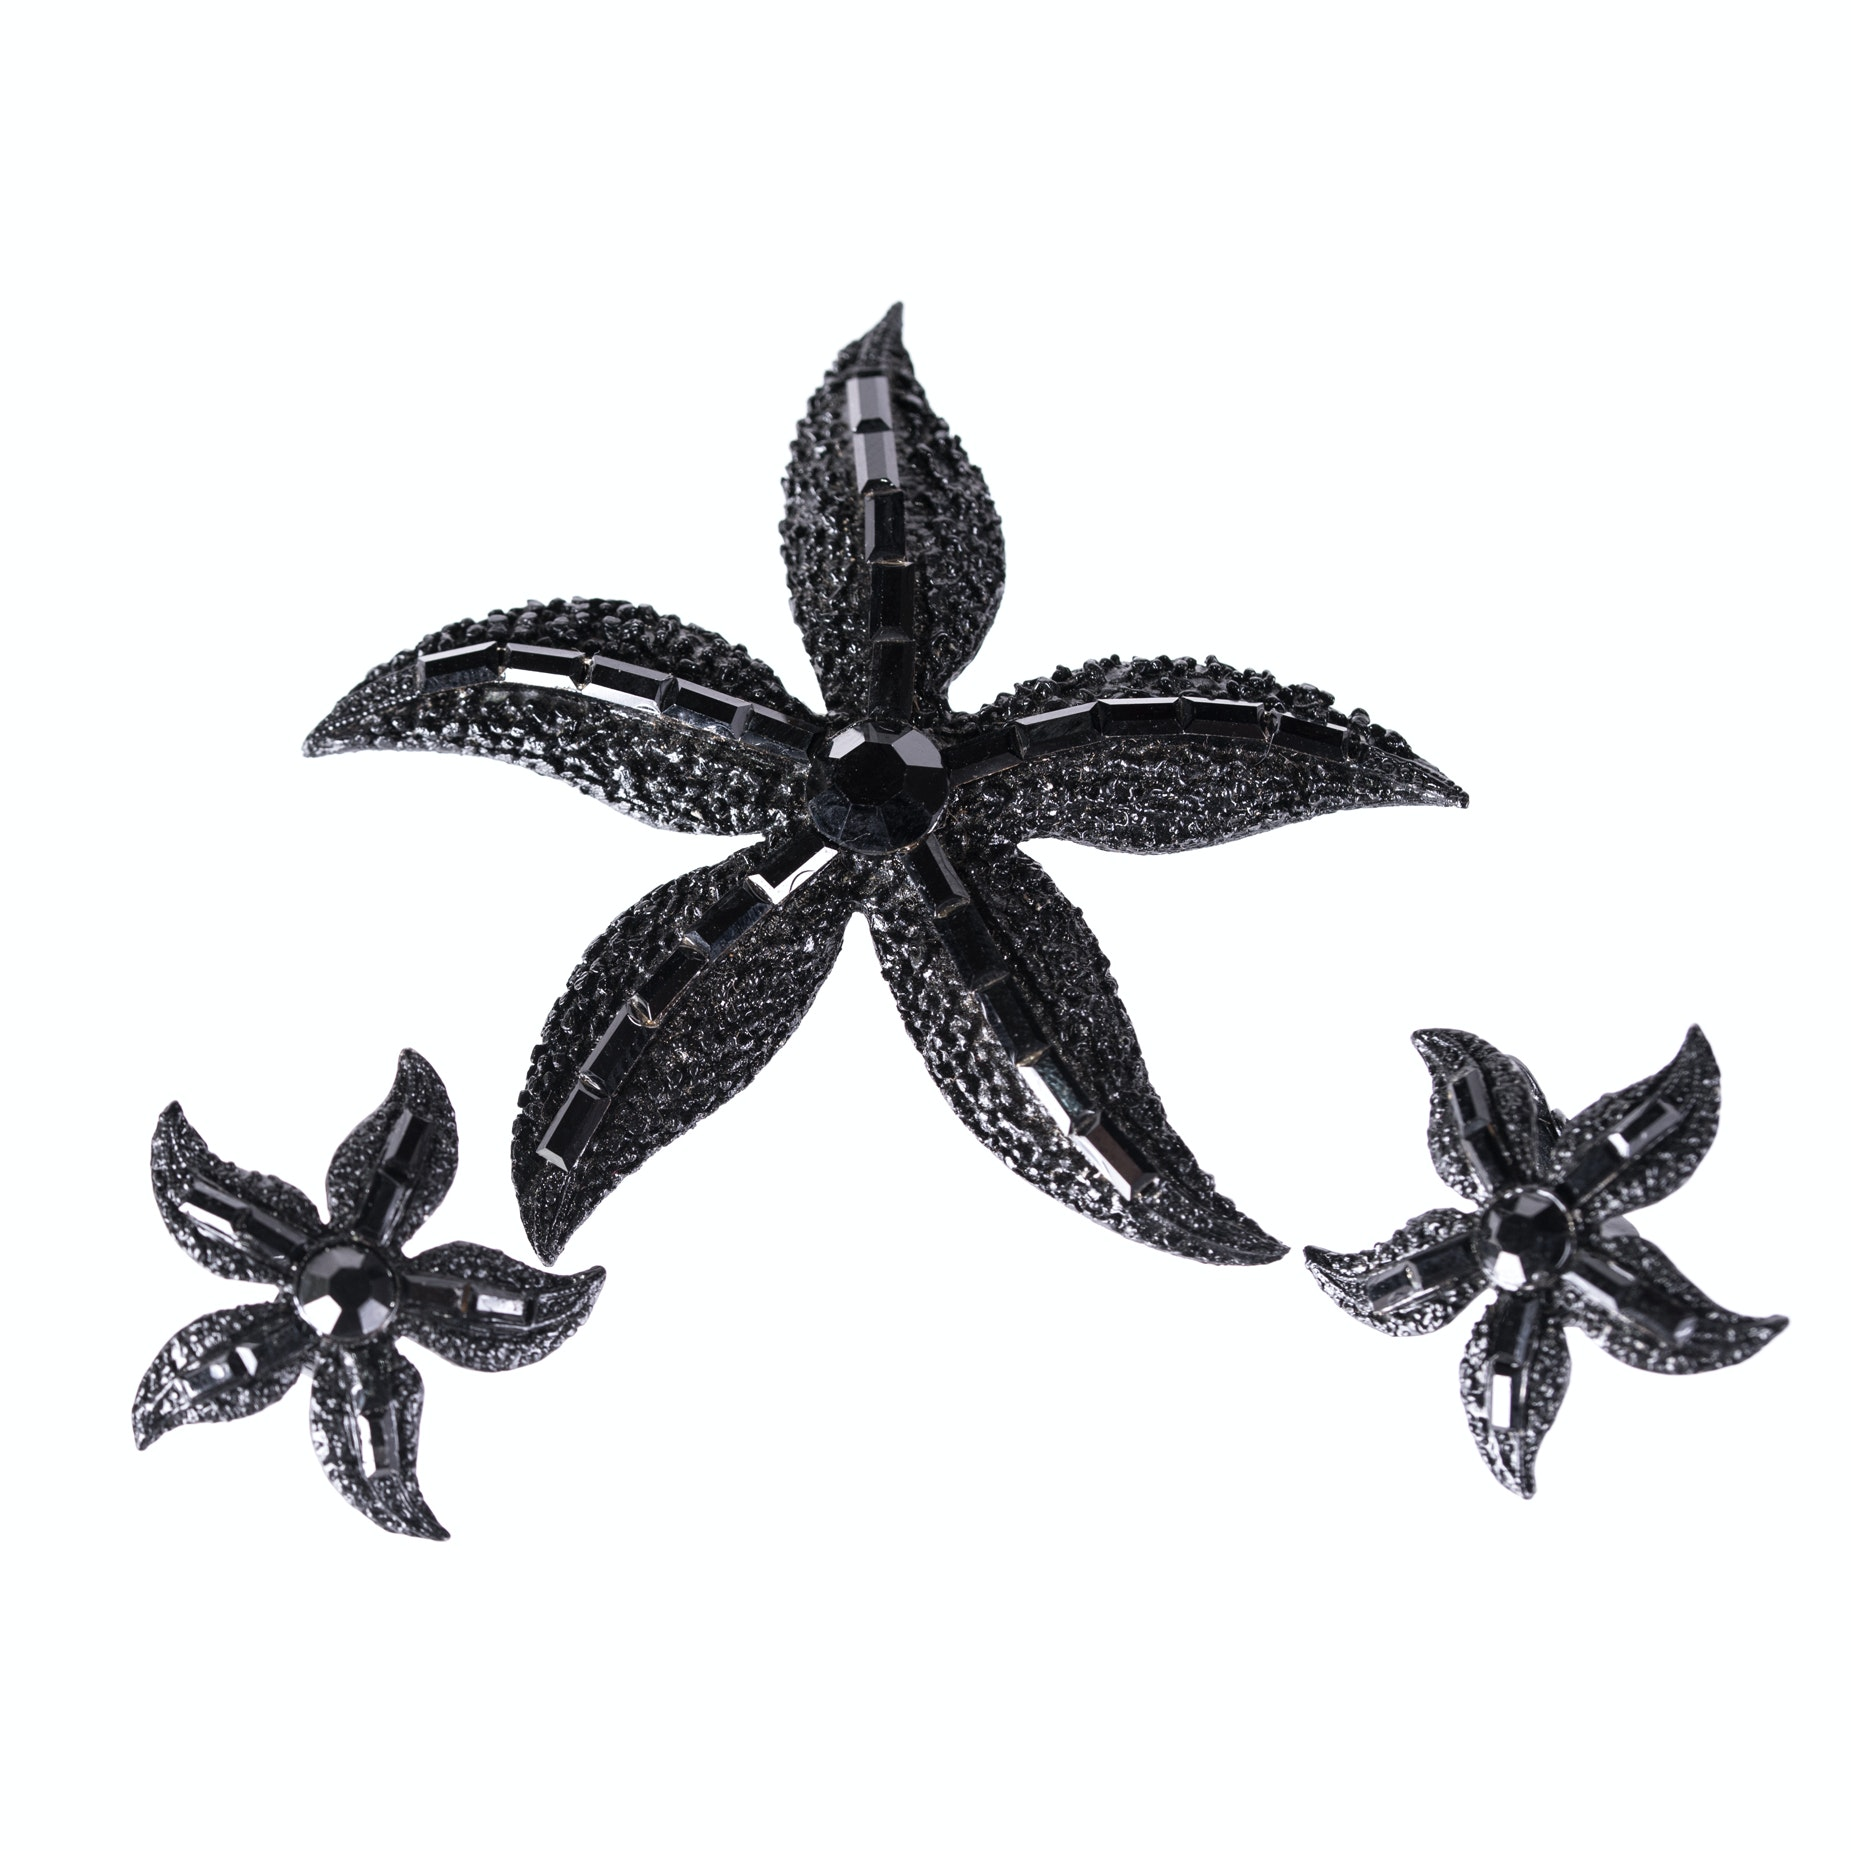 Opaque Black Rhinestone Star Brooch and Earrings by Weiss